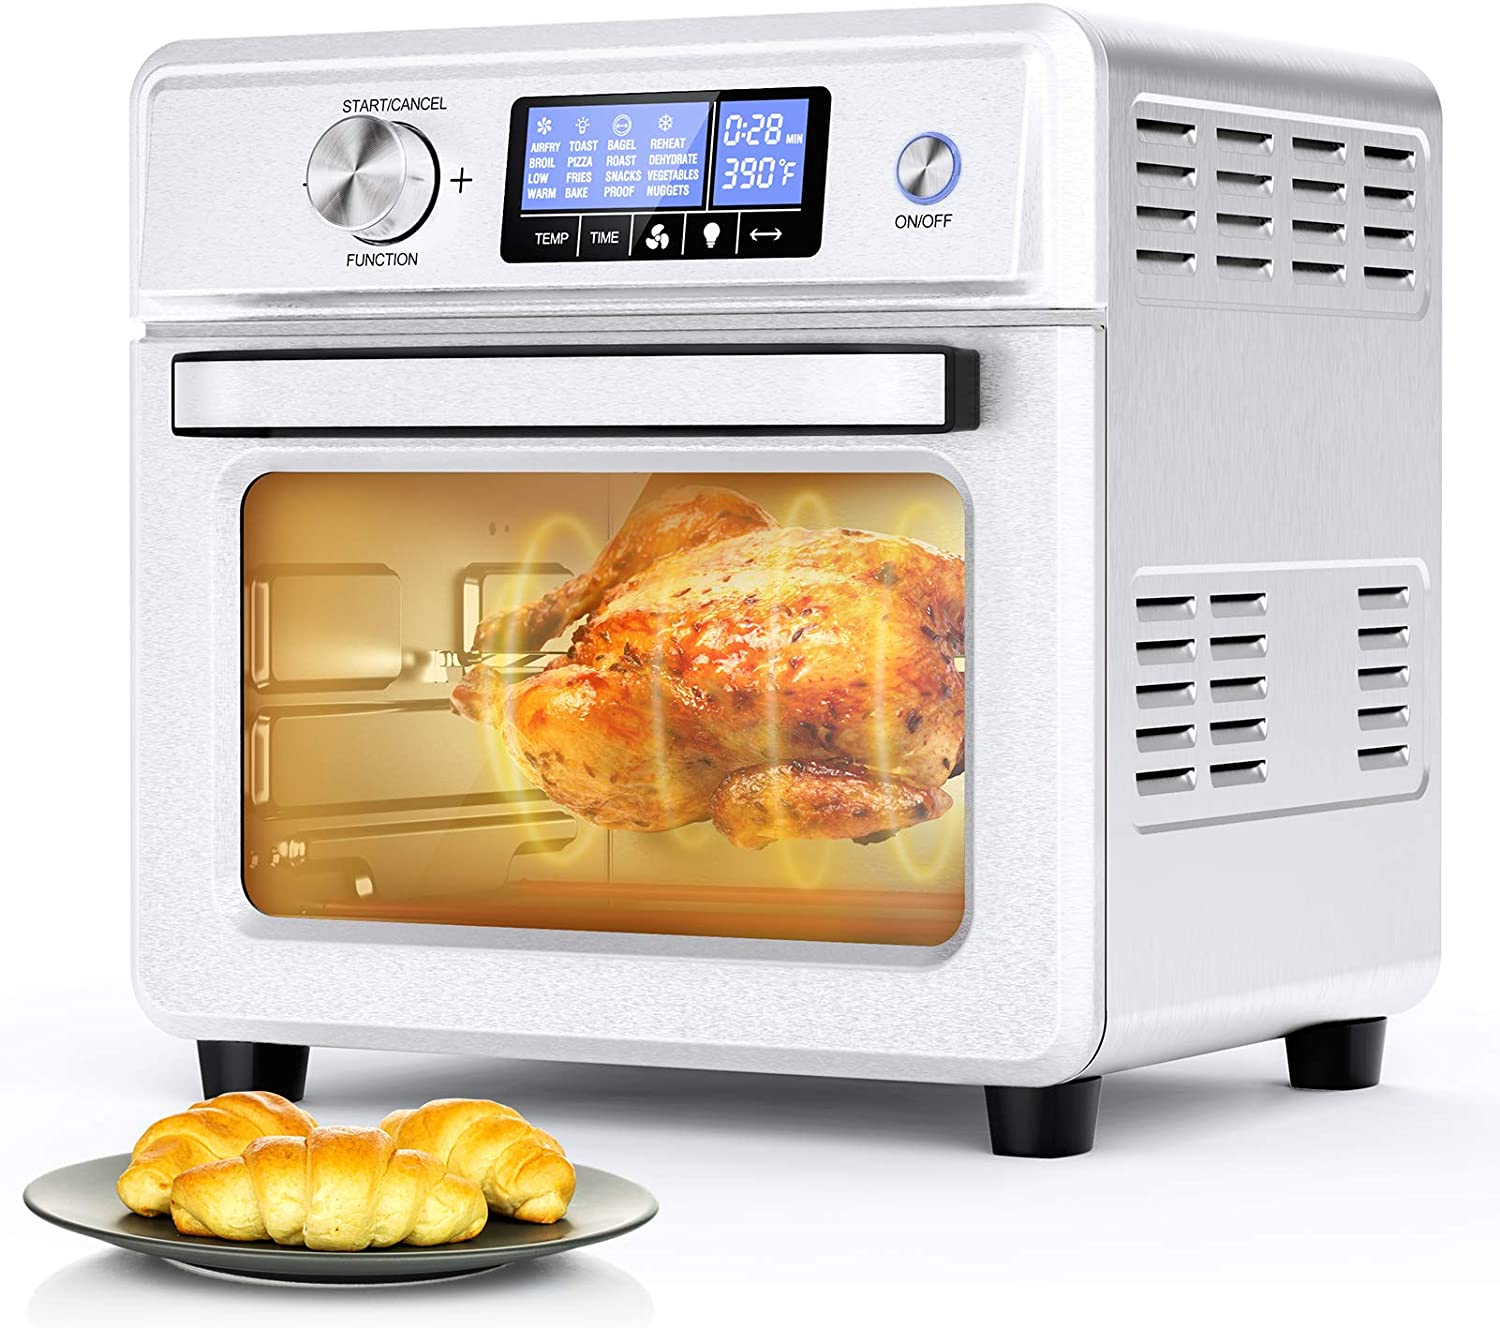 ICETEK Convection Oven Countertop, 16-in-1 Toaster Oven Airfryer Combo, 21QT 1800W Stainless Steel Oven with Temperature Control, Thawing, Defrost, Dehydrate, 9 Accessories